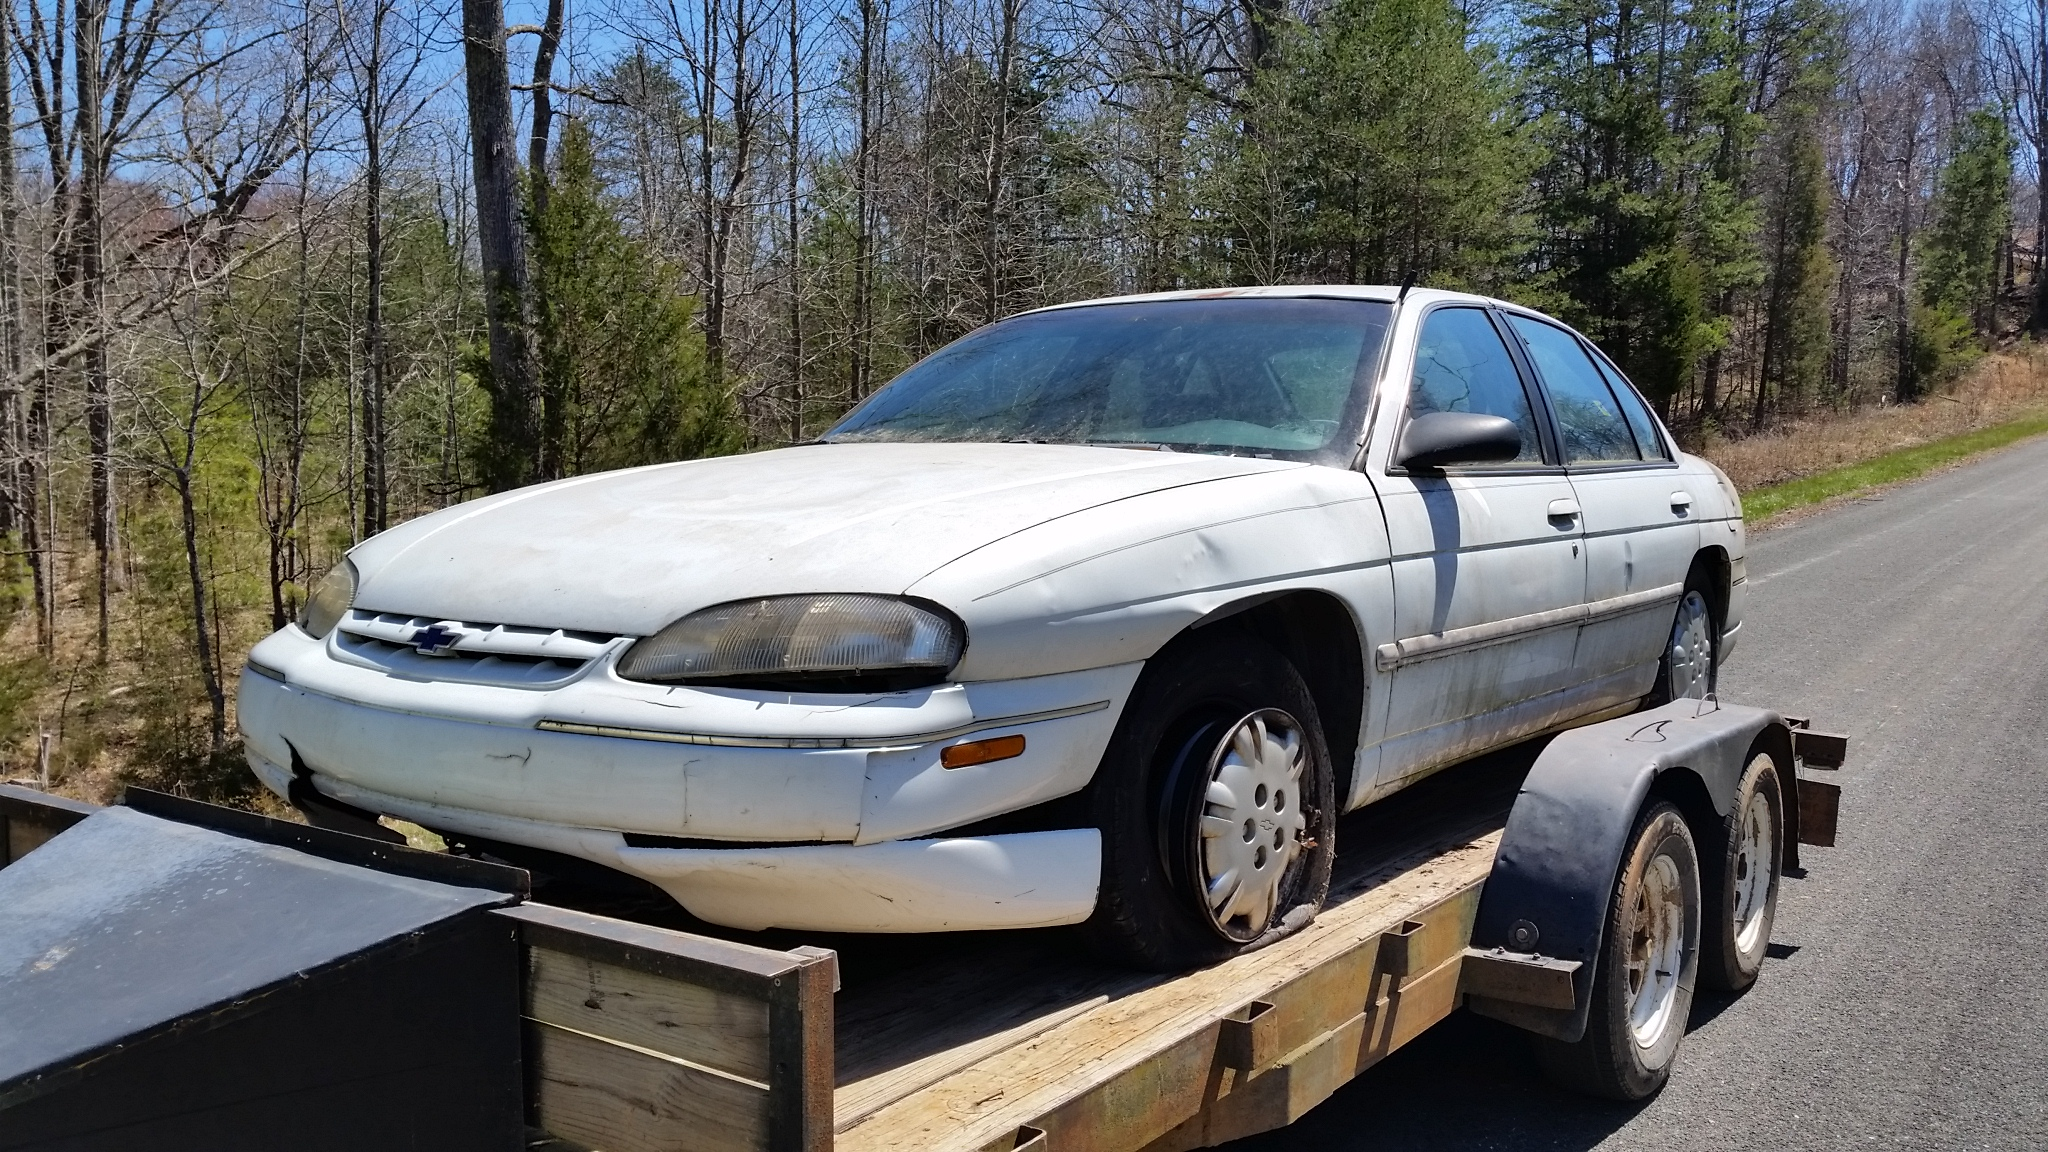 1998 chevrolet lumina parts glendale watkins of yanceyville nc fandeluxe Image collections